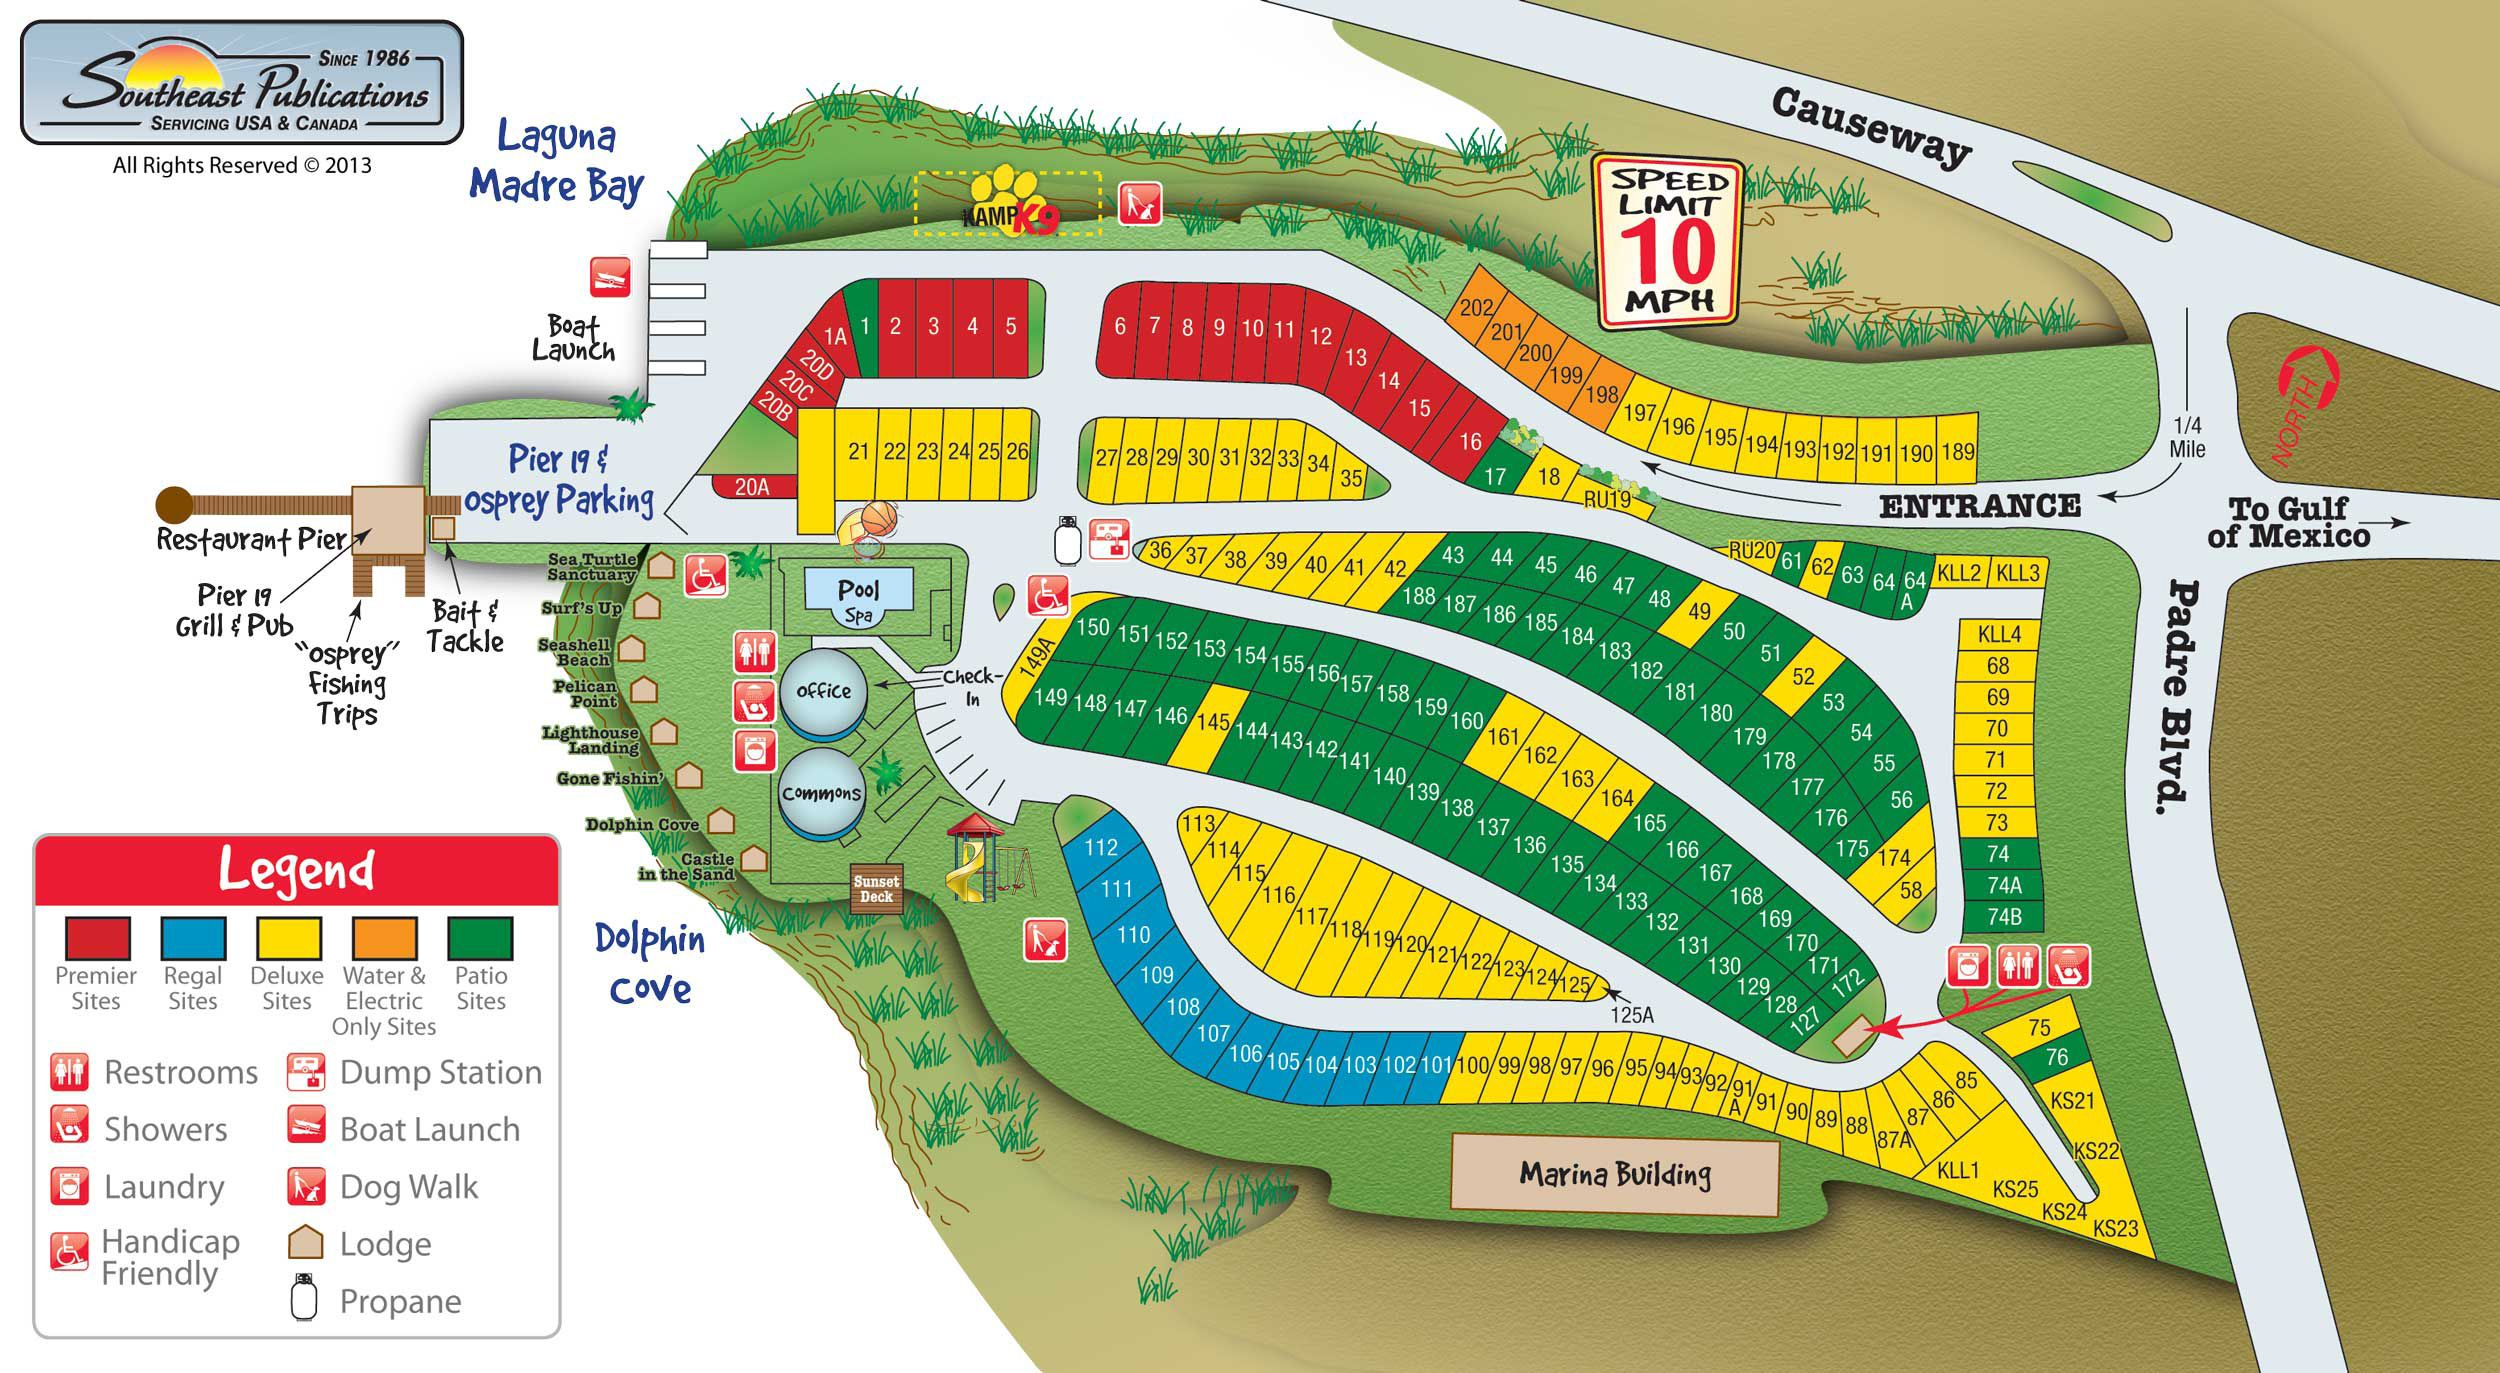 Activities, Attractions And Events For The South Padre Island Koa Rv - South Texas Rv Parks Map